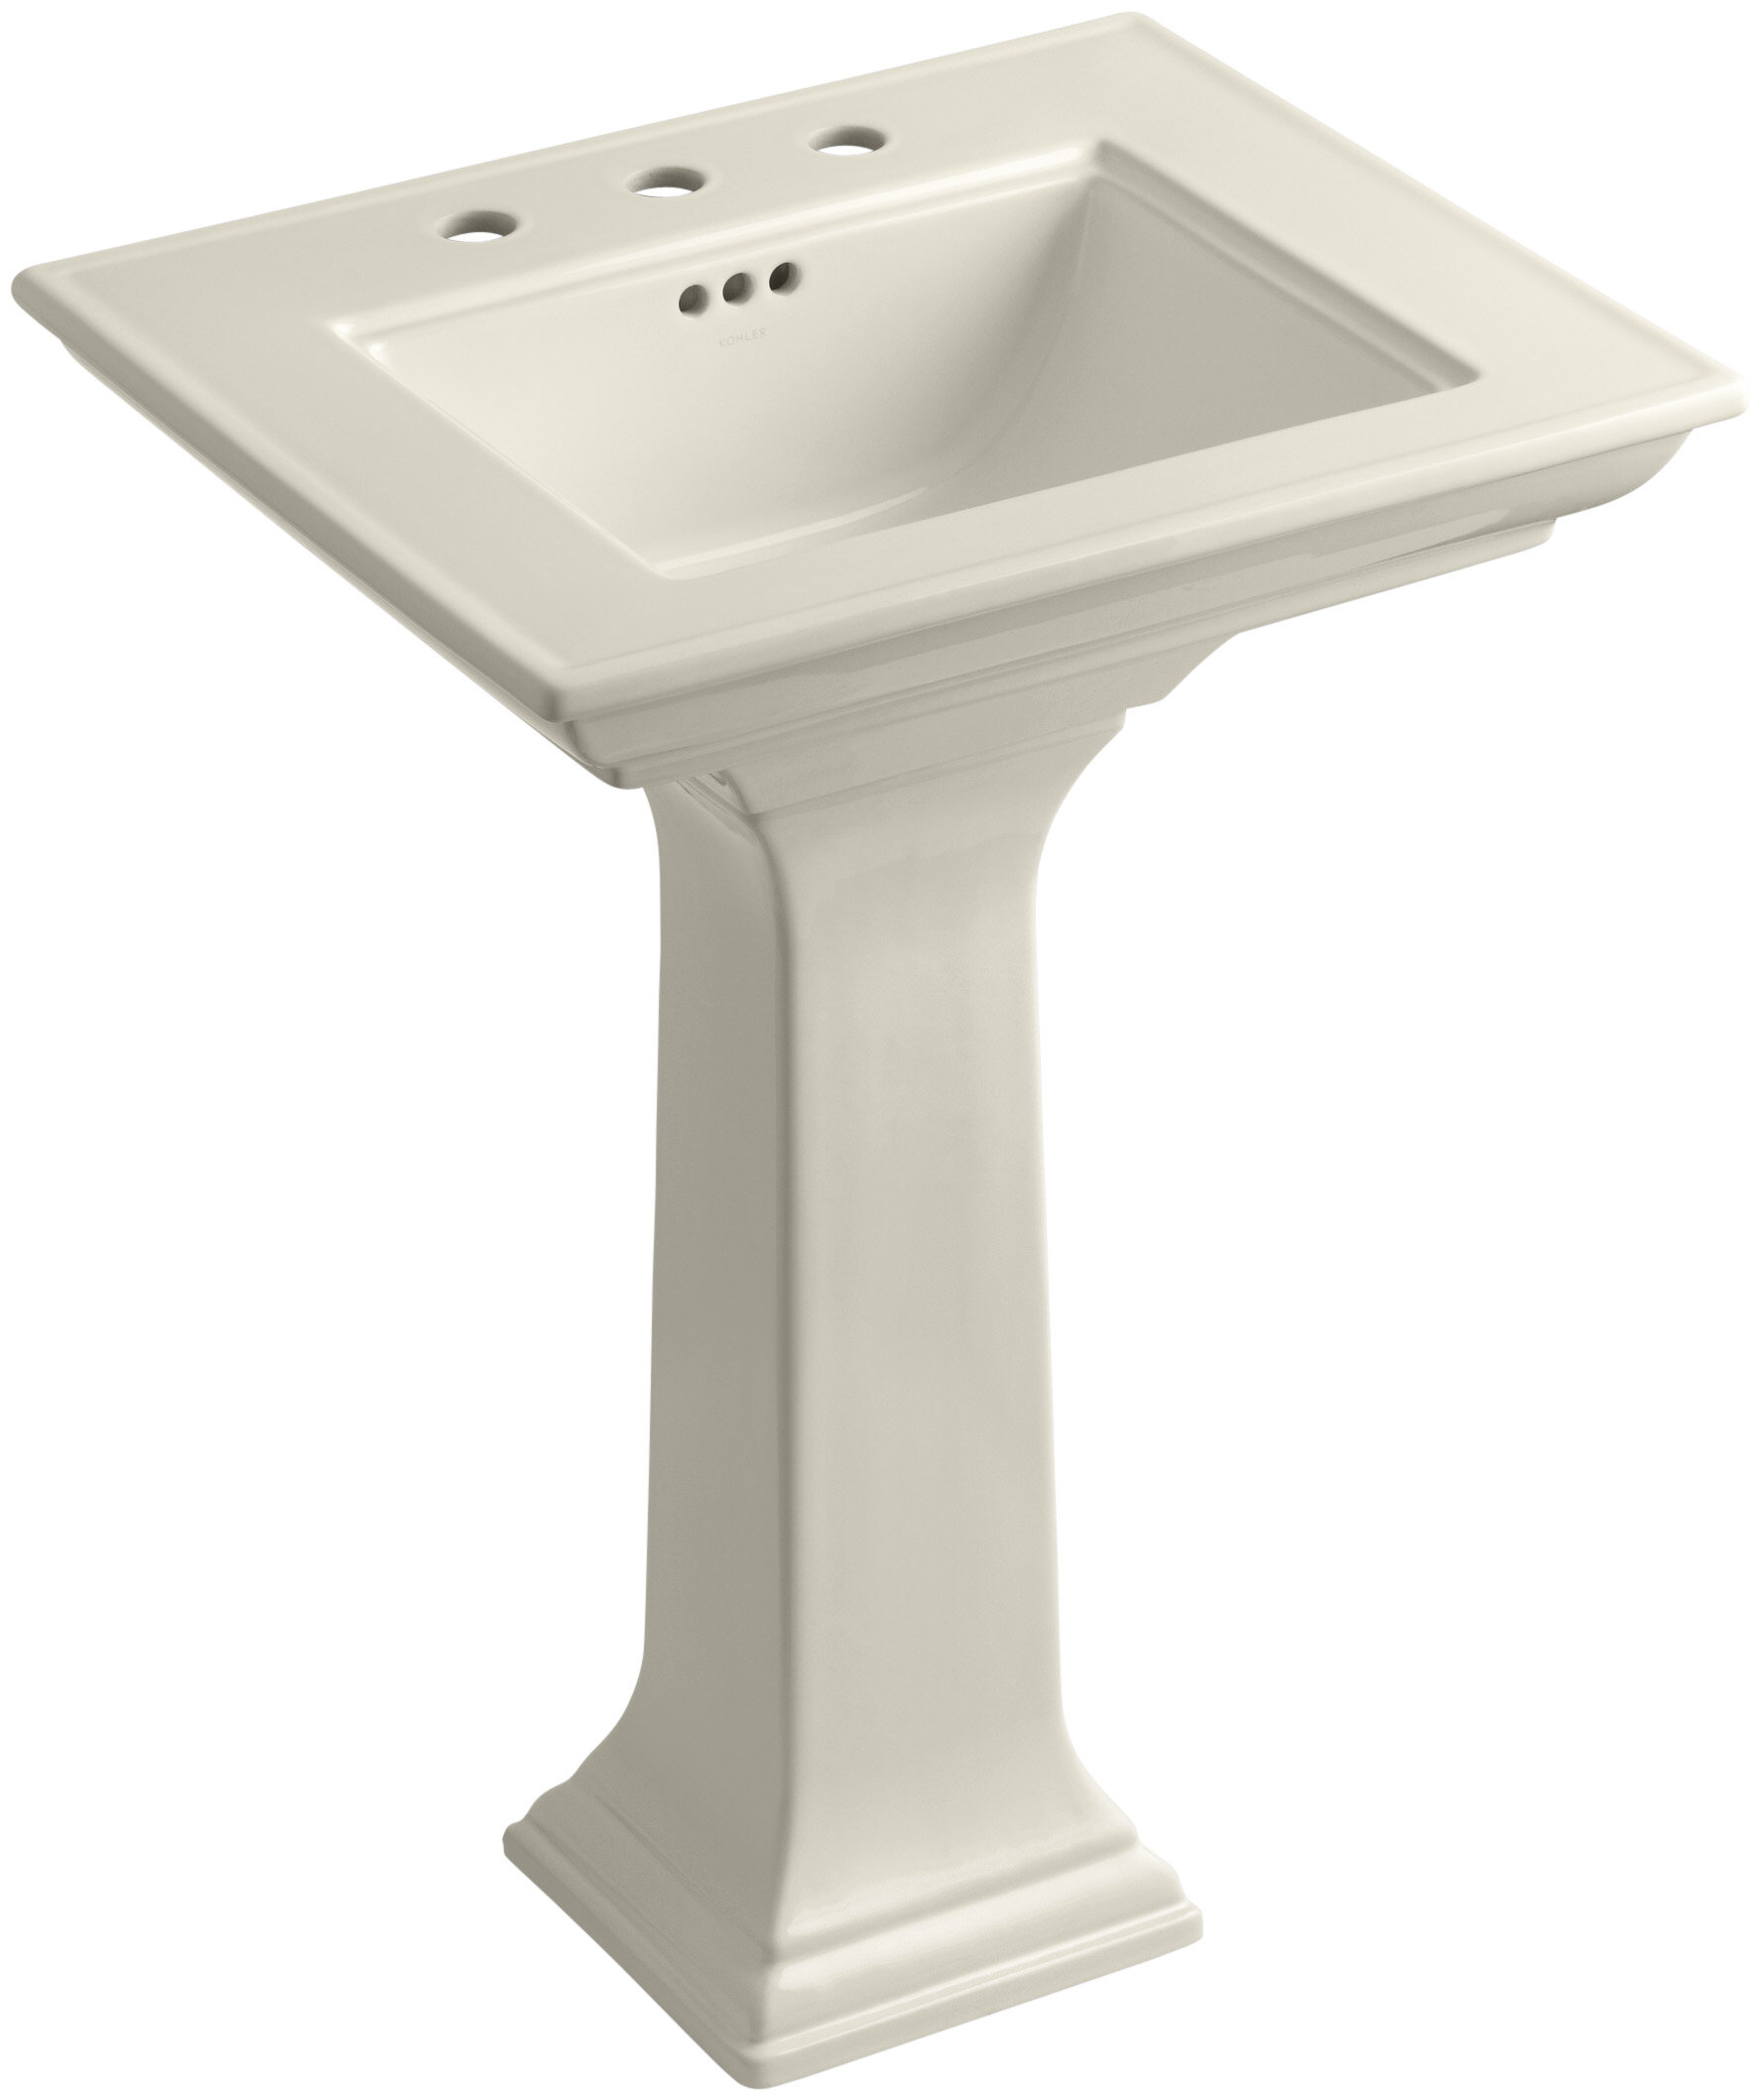 Memoirs Ceramic Pedestal Bathroom Sink